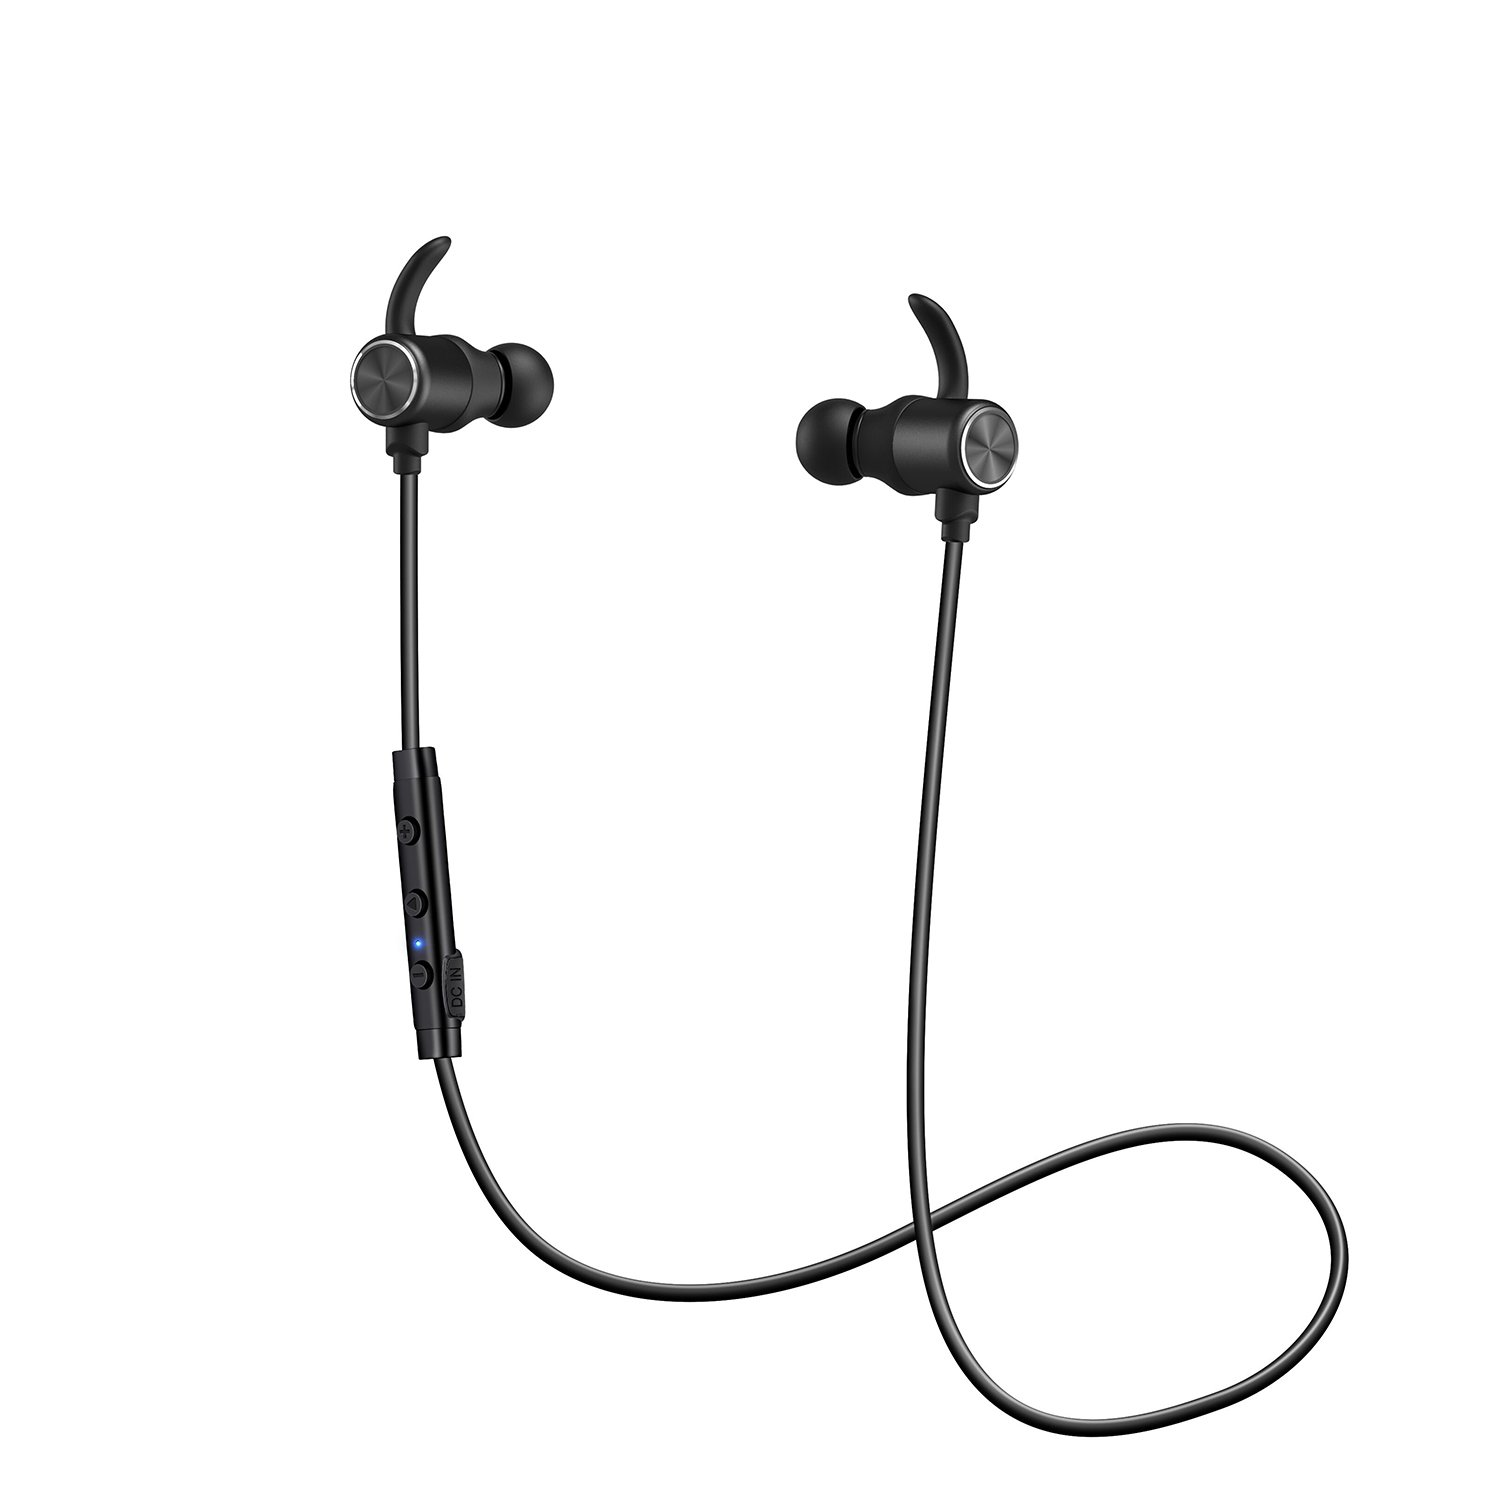 Bluetooth Headphones, ENACFIRE aptx Stereo Sound Magnetic Wireless Earbuds Sport In-Ear Sweatproof Earphones with Mic for Sports with 8H Playtime